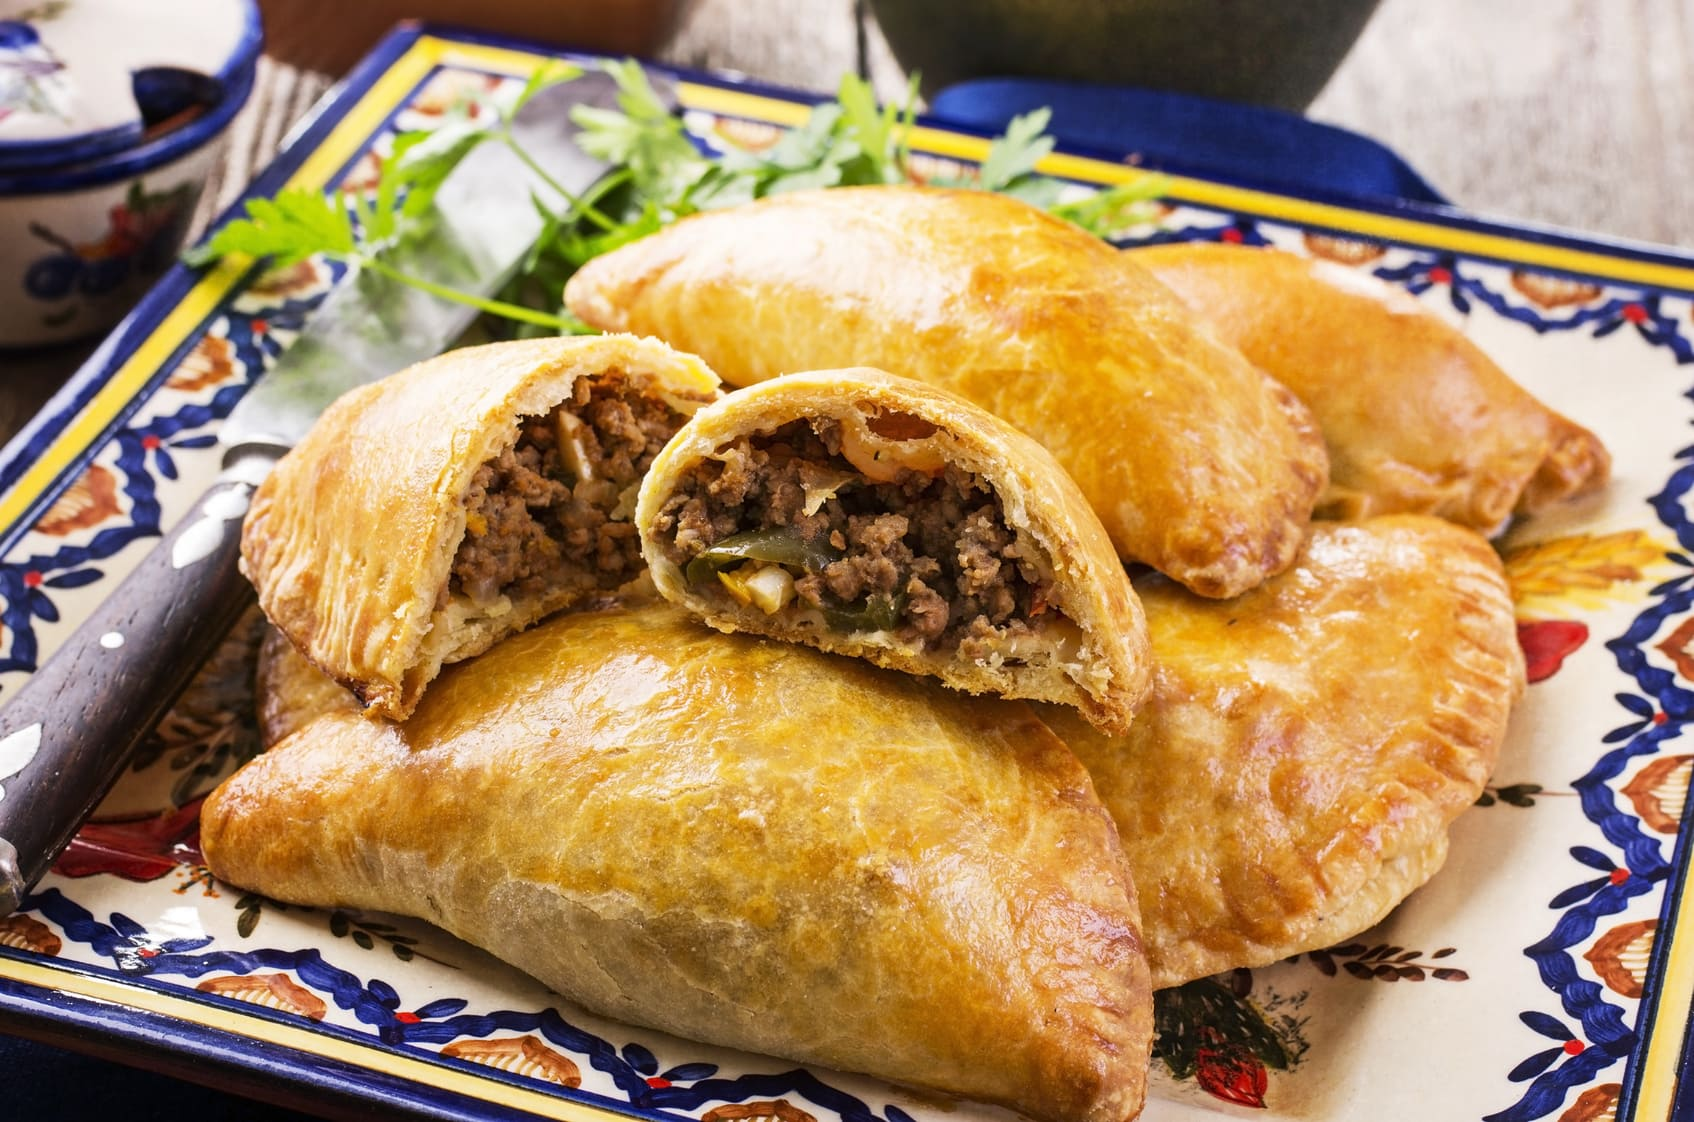 What The Heck Is An Empanada? - Farmers' Almanac